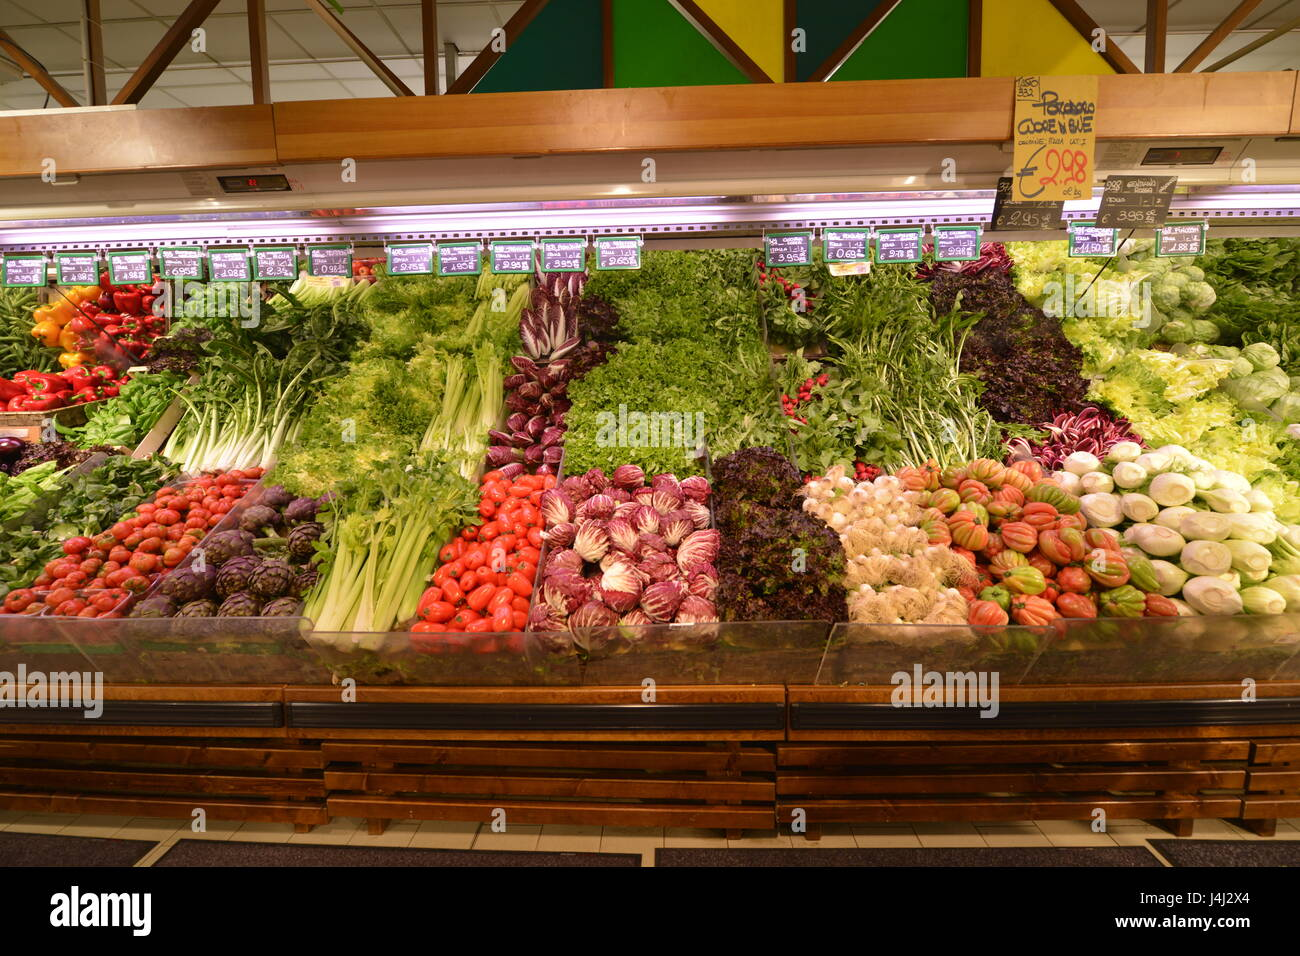 vegetables a superstore stockfotos vegetables a superstore bilder alamy. Black Bedroom Furniture Sets. Home Design Ideas